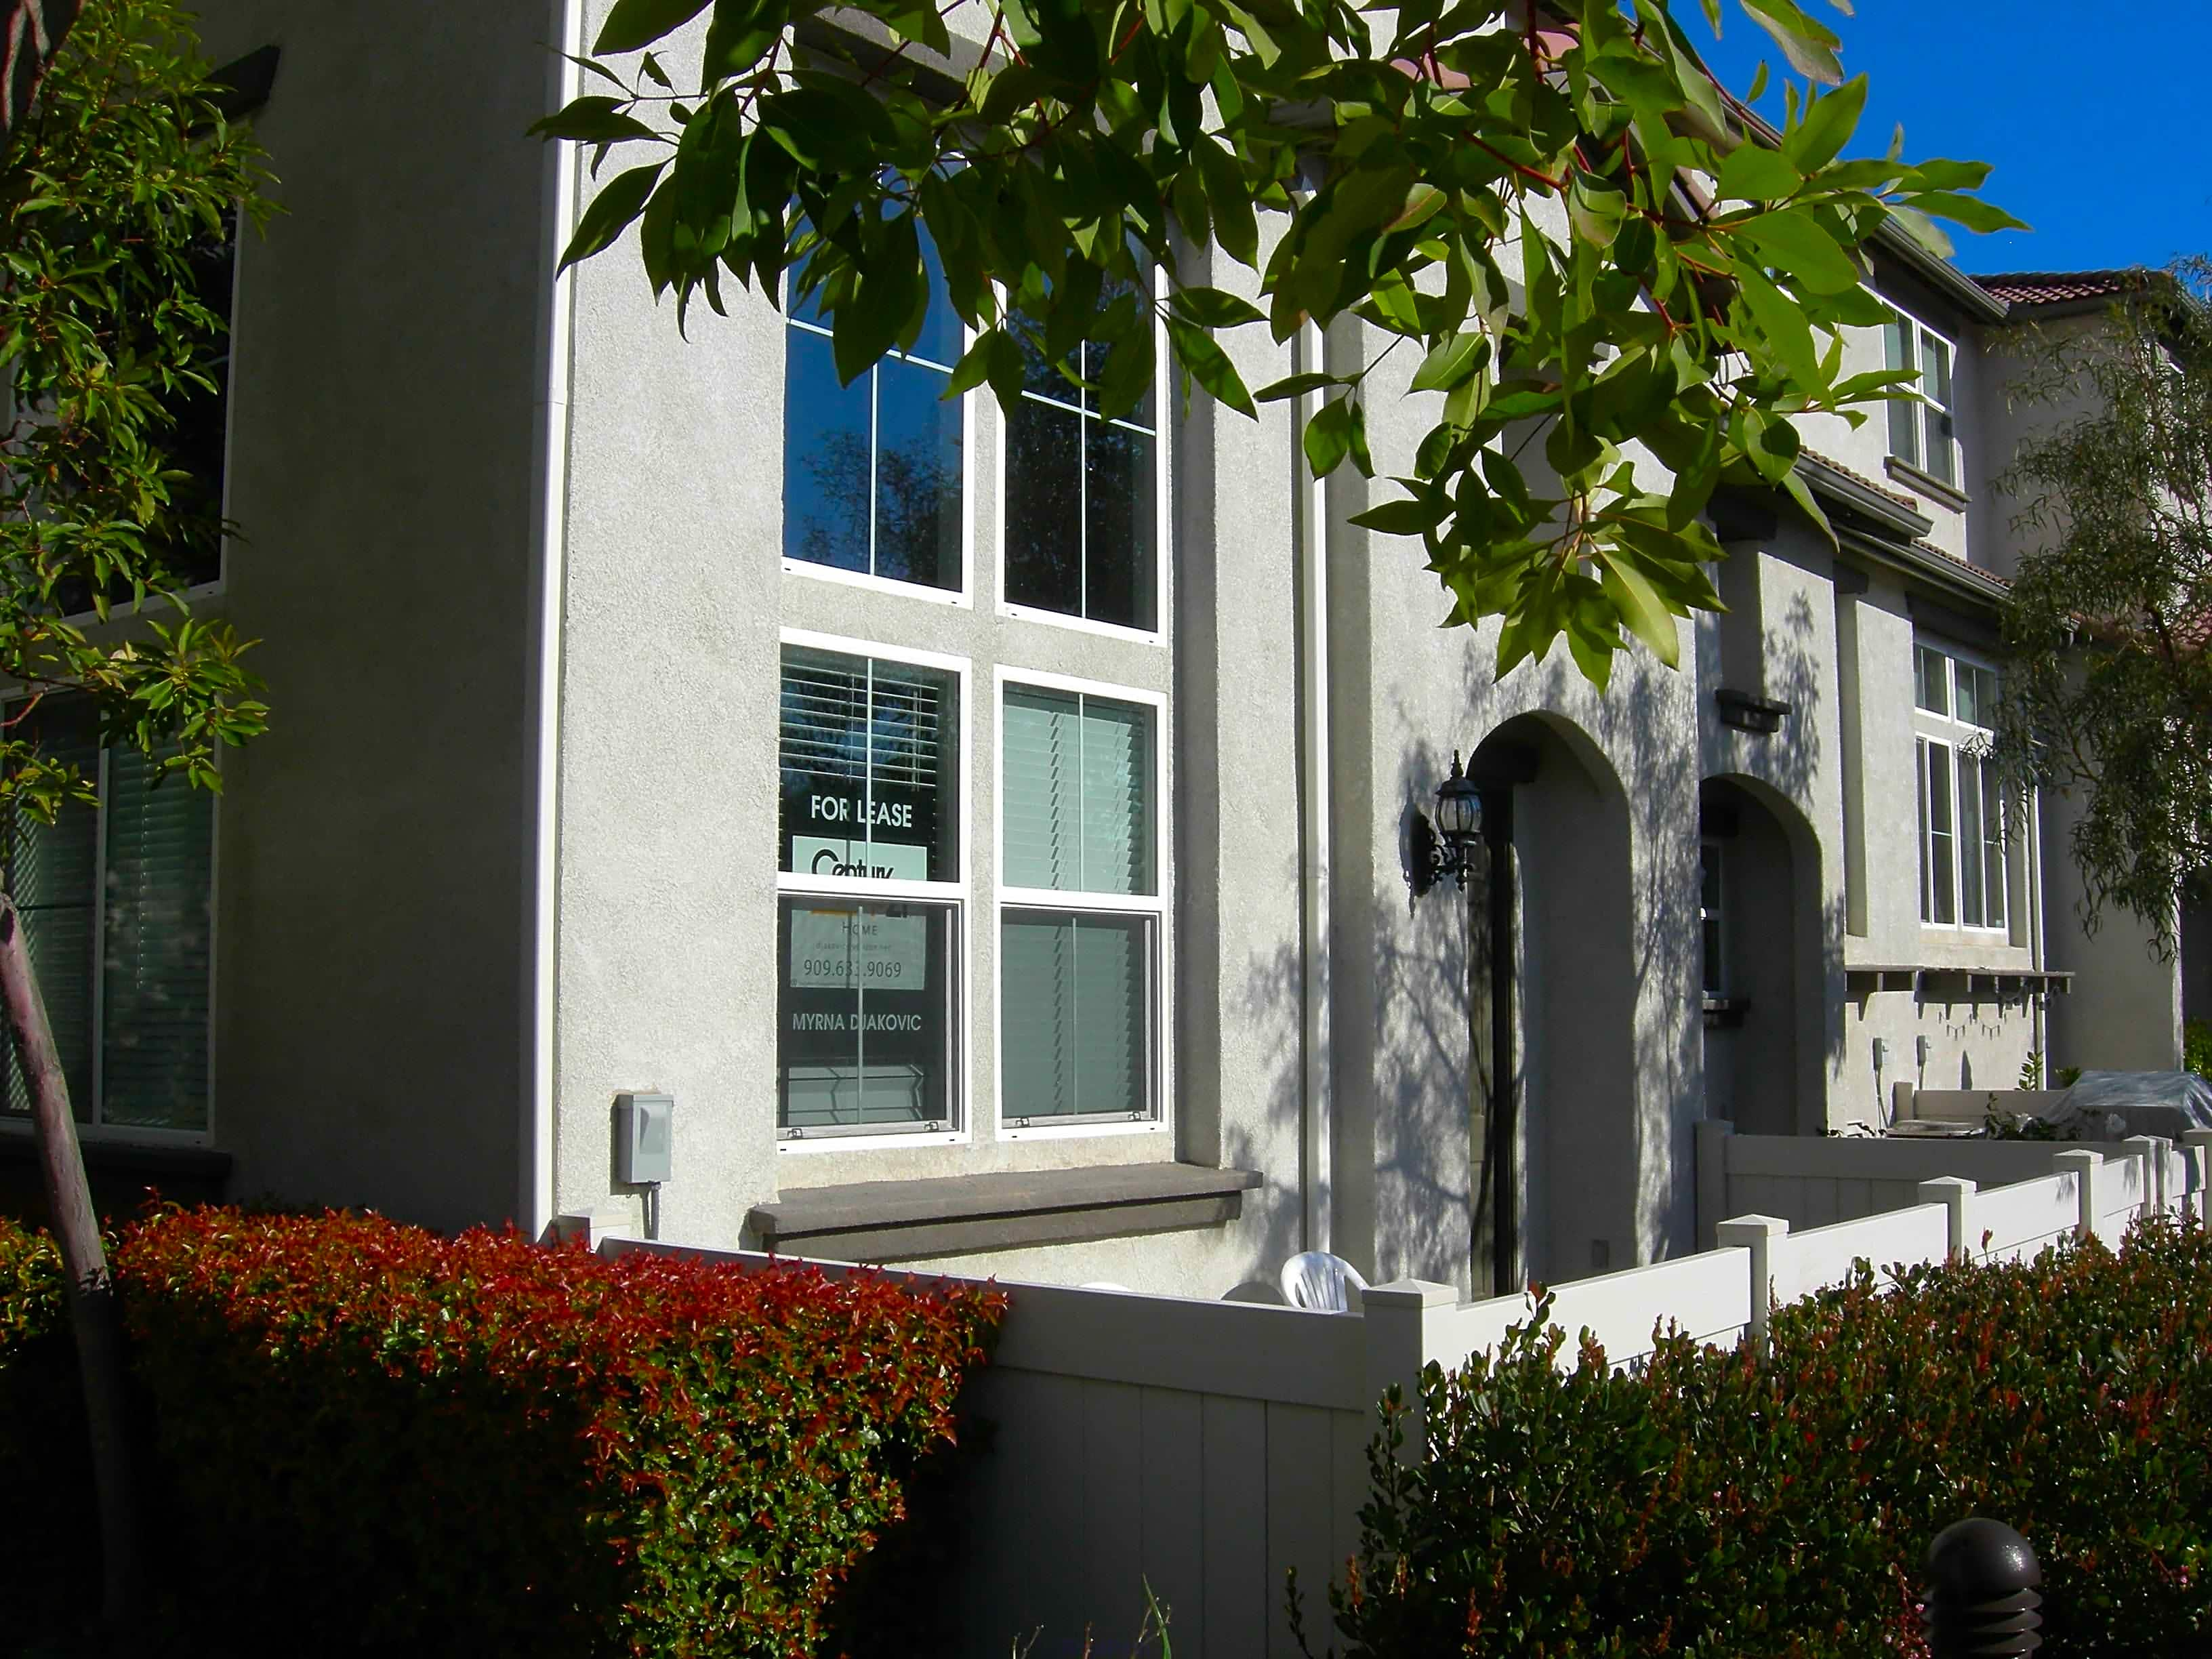 Condo for Rent in Murrieta